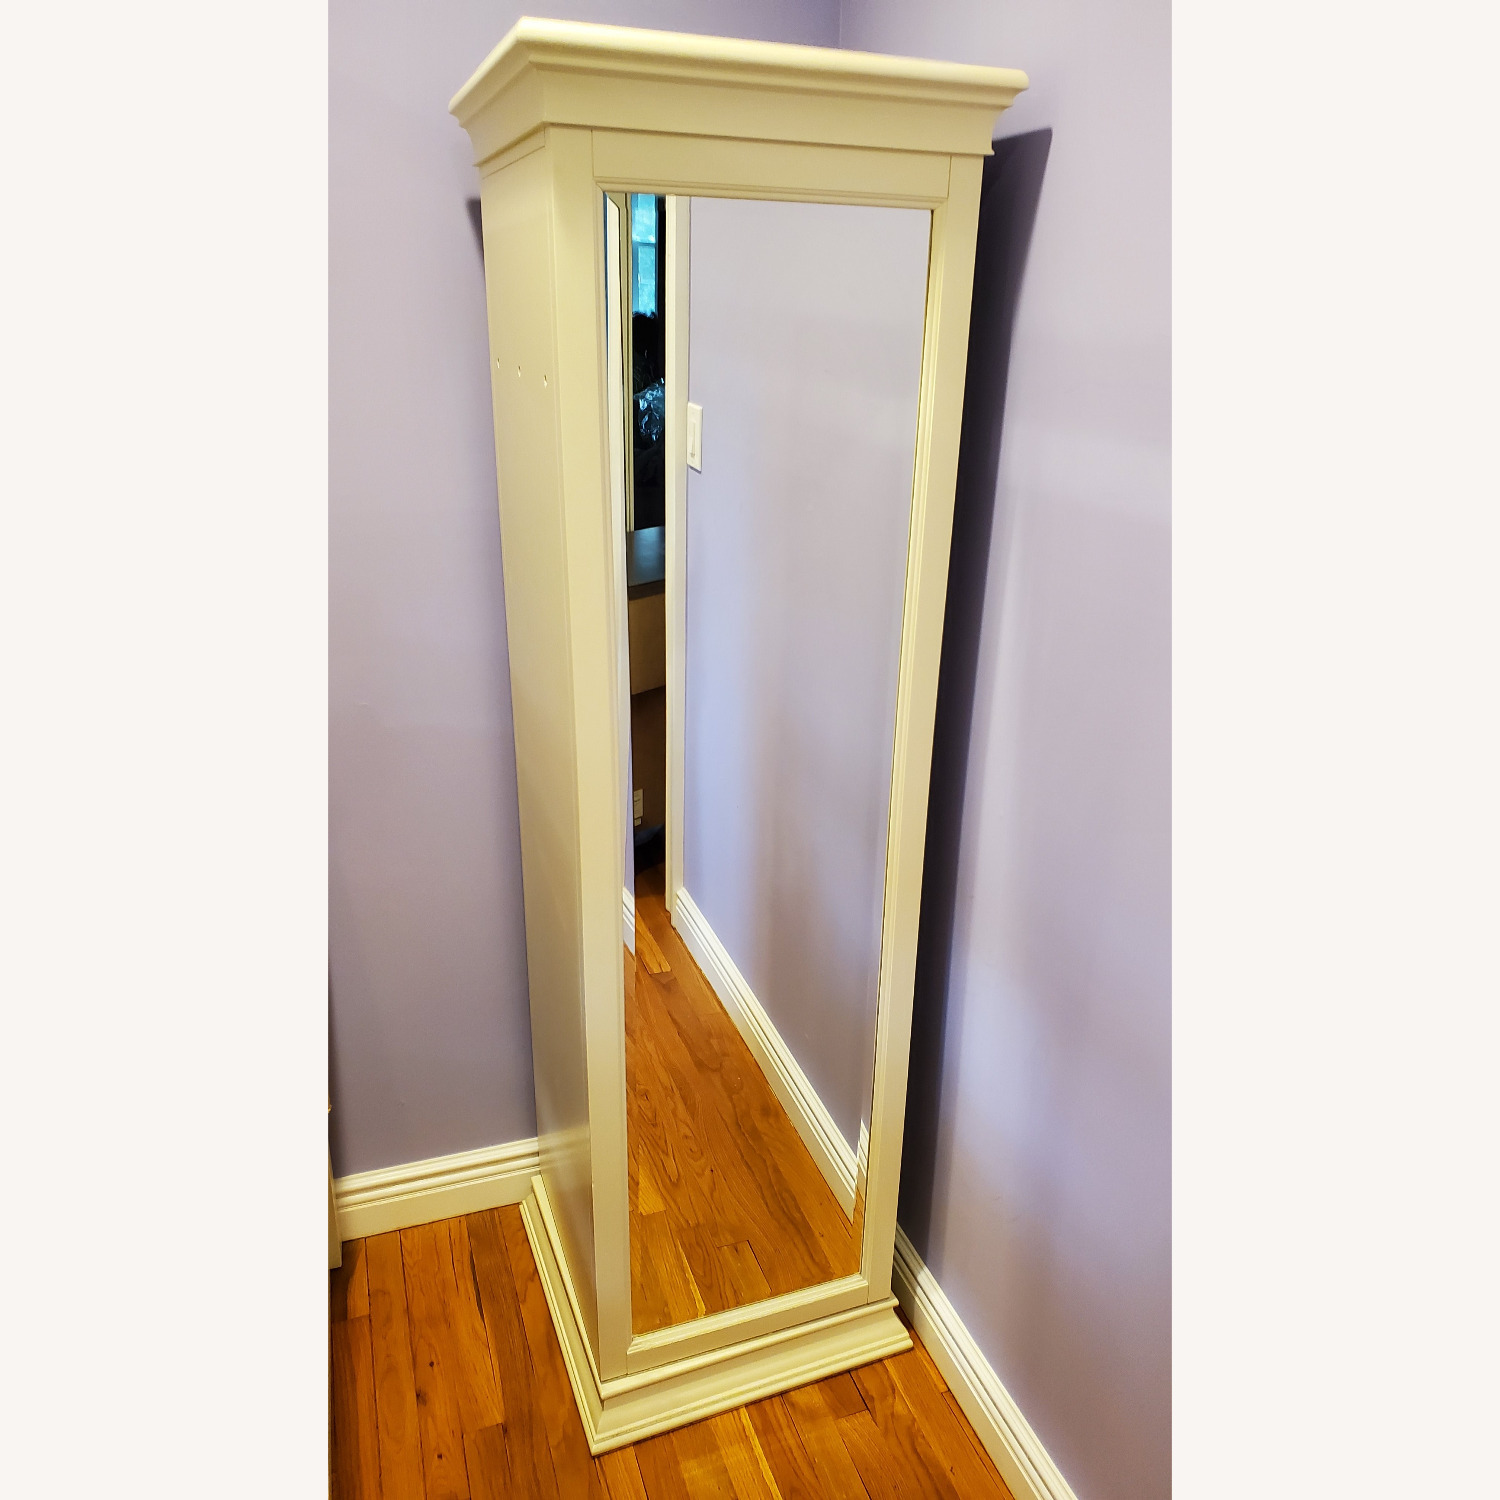 Pottery Barn Display-It Rotating Bookcase w/Mirror - image-4